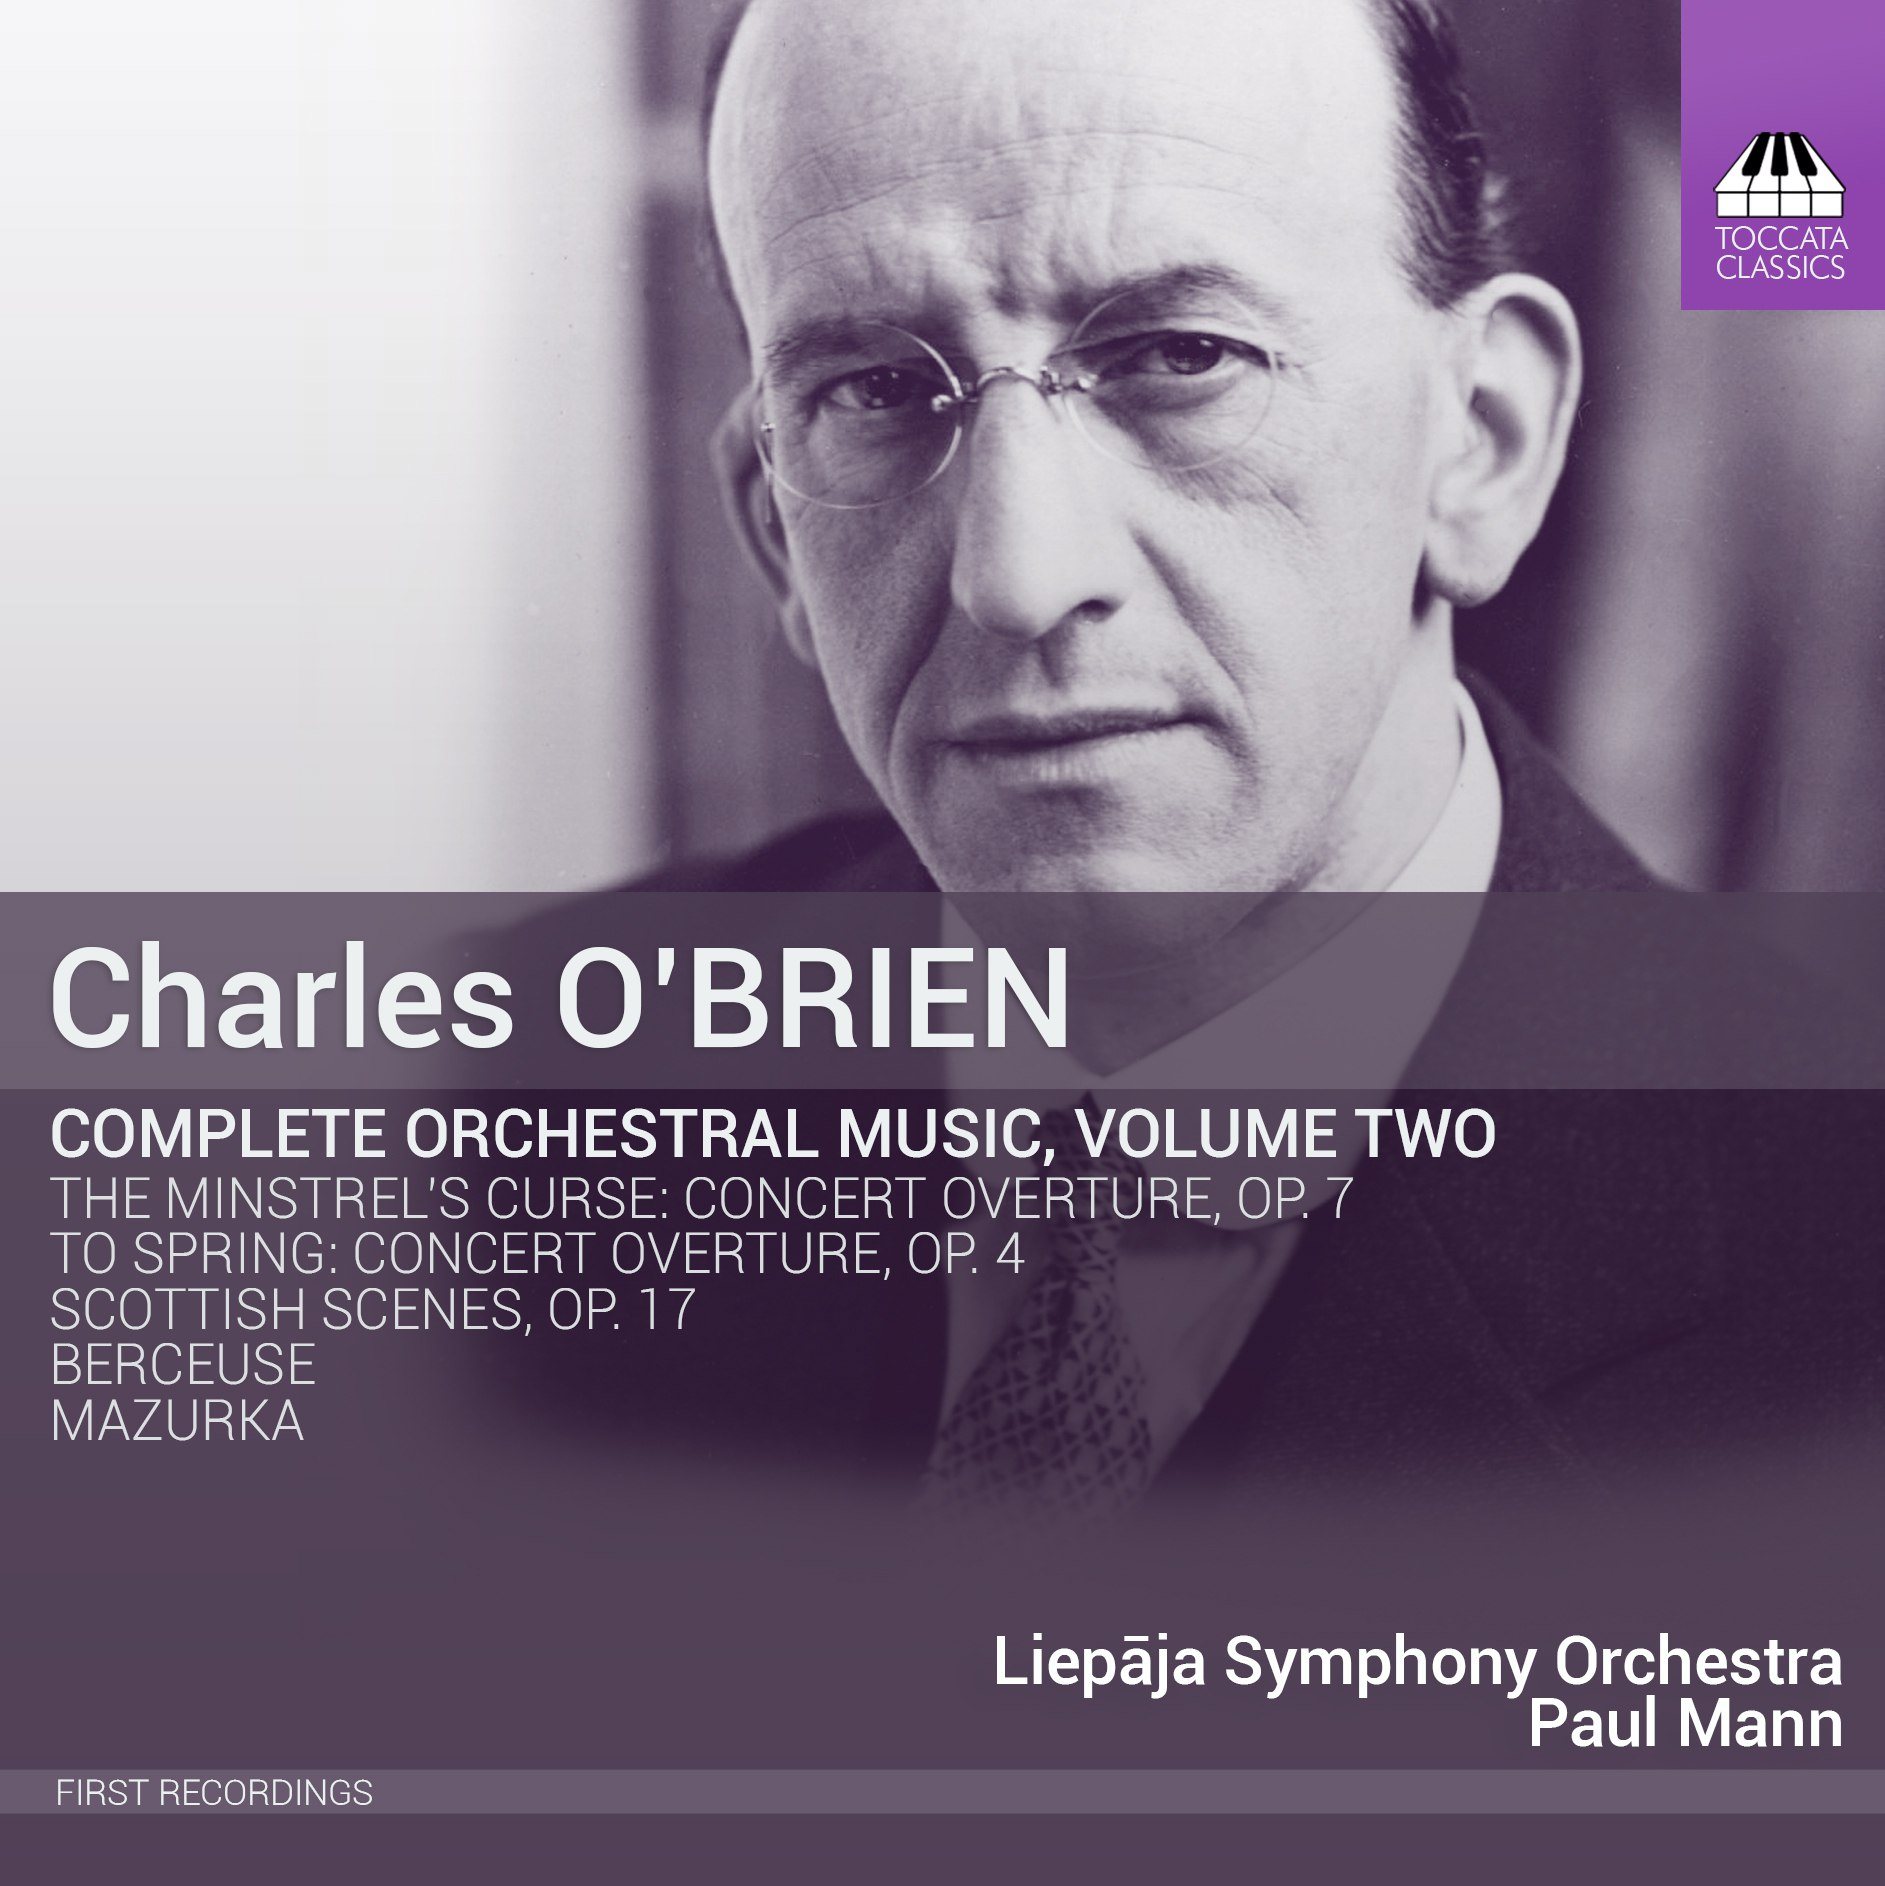 Charles O'Brien: Complete Orchestral Music, Volume Two